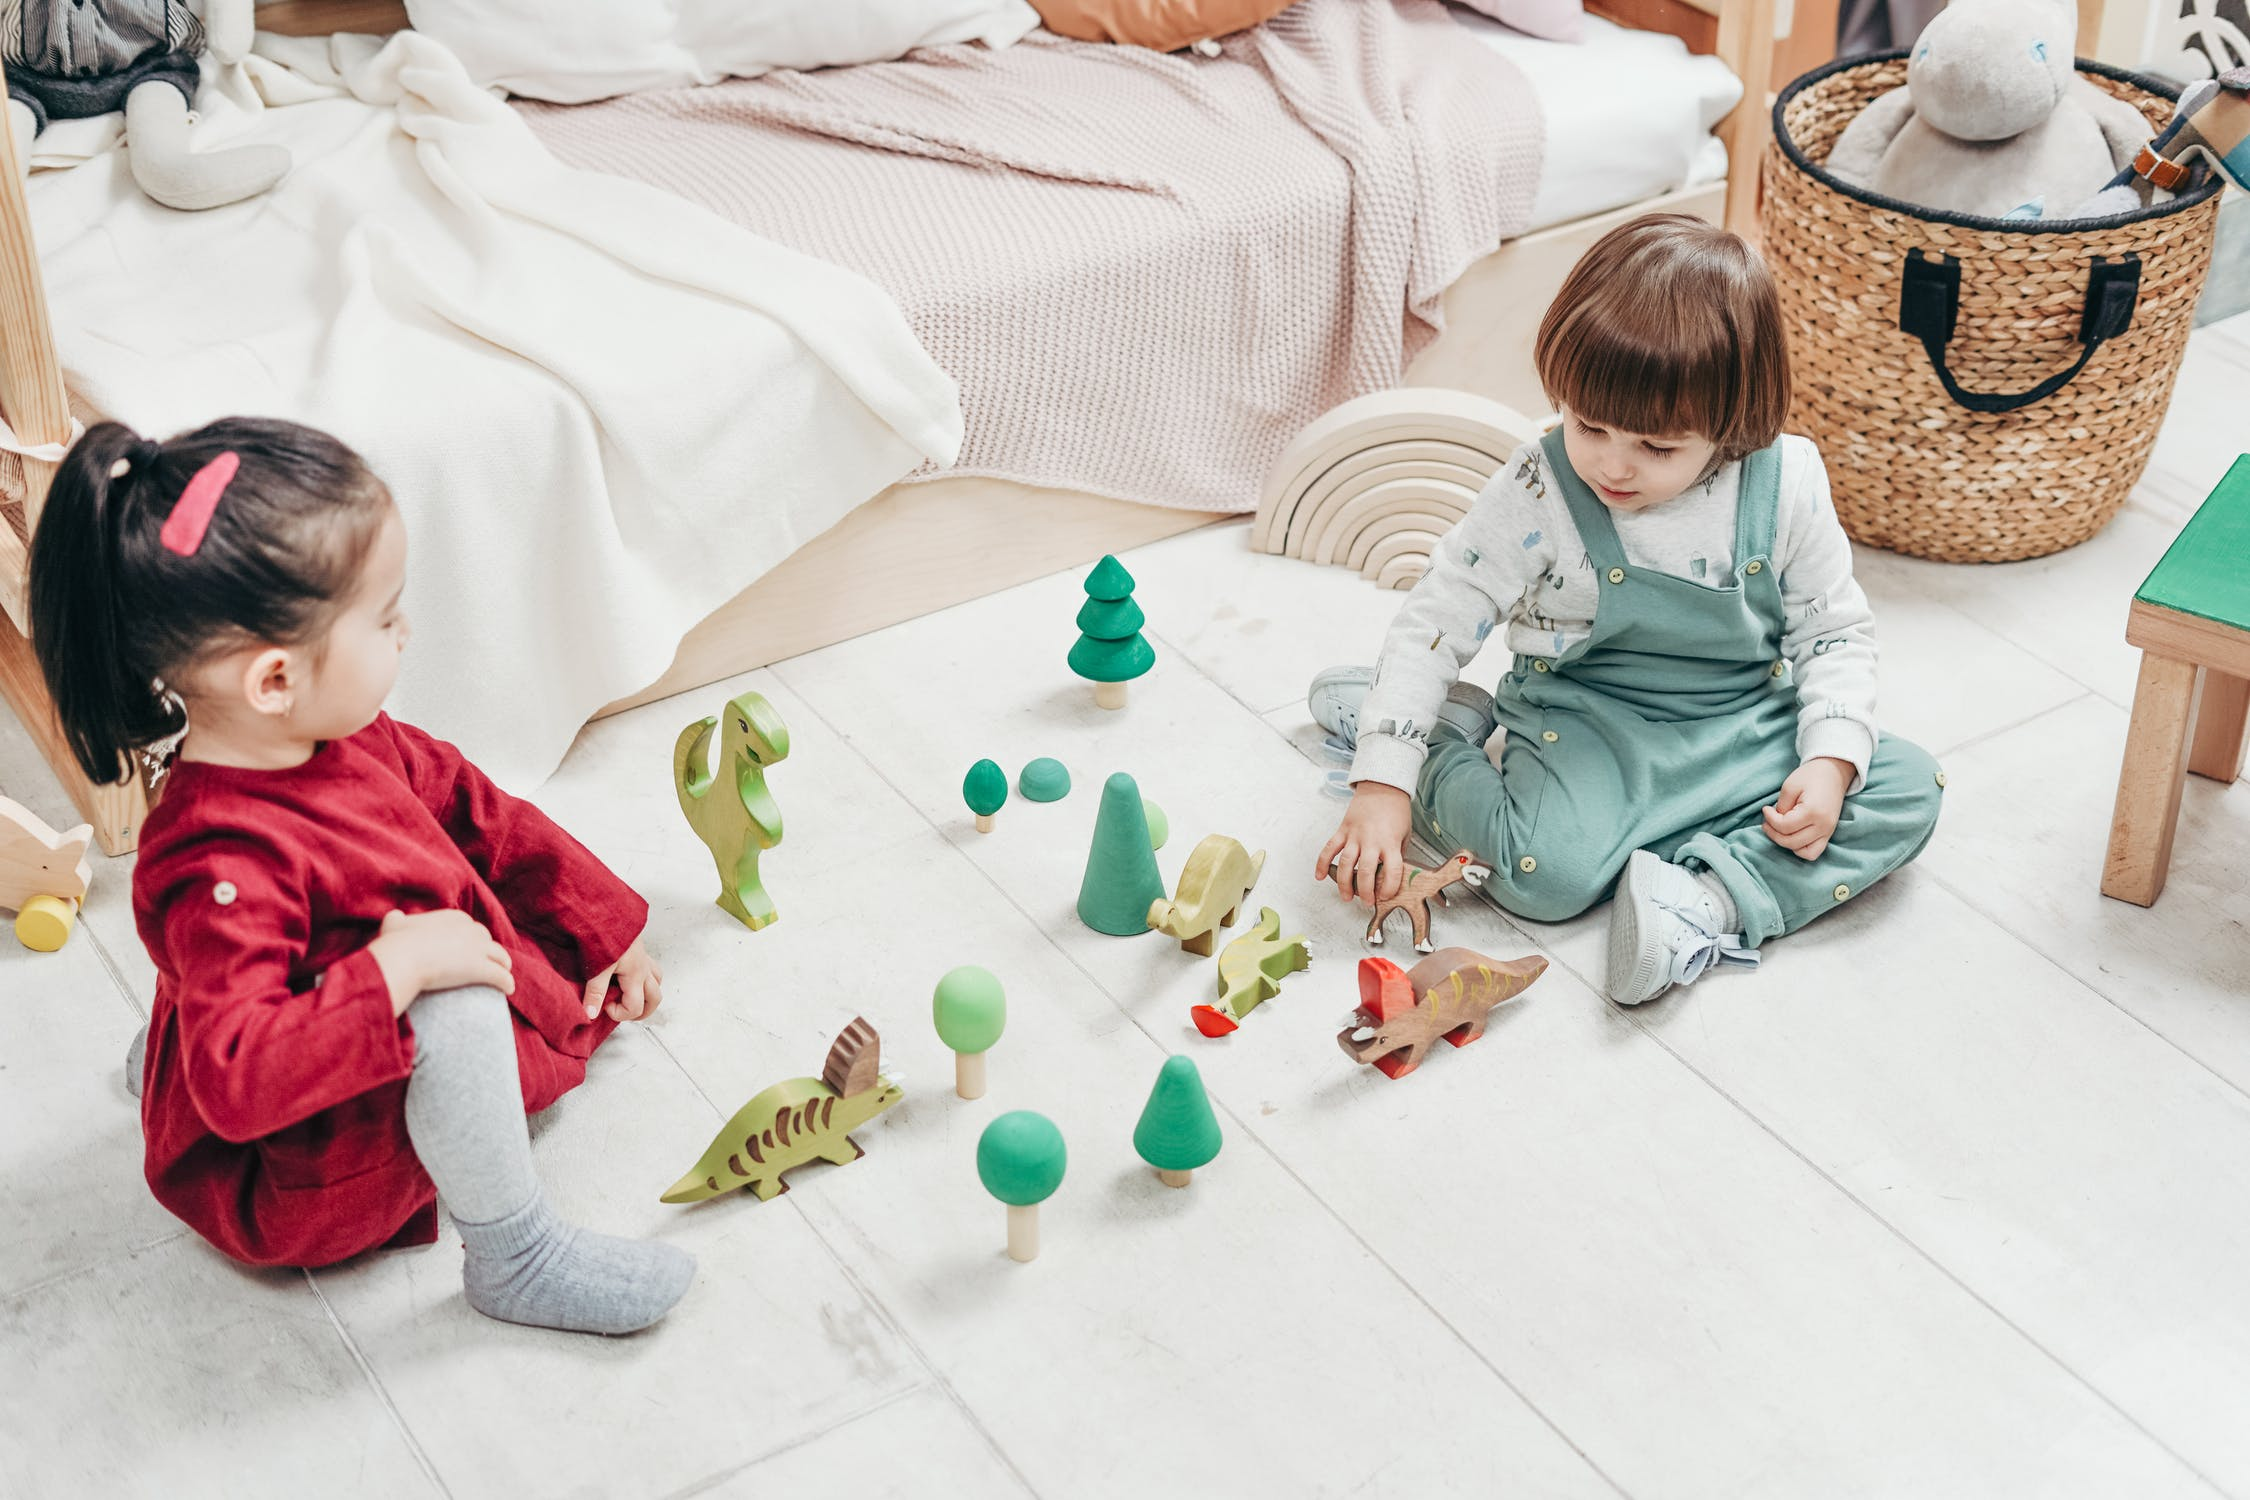 Two young children play with toys on the floor of a bedroom.